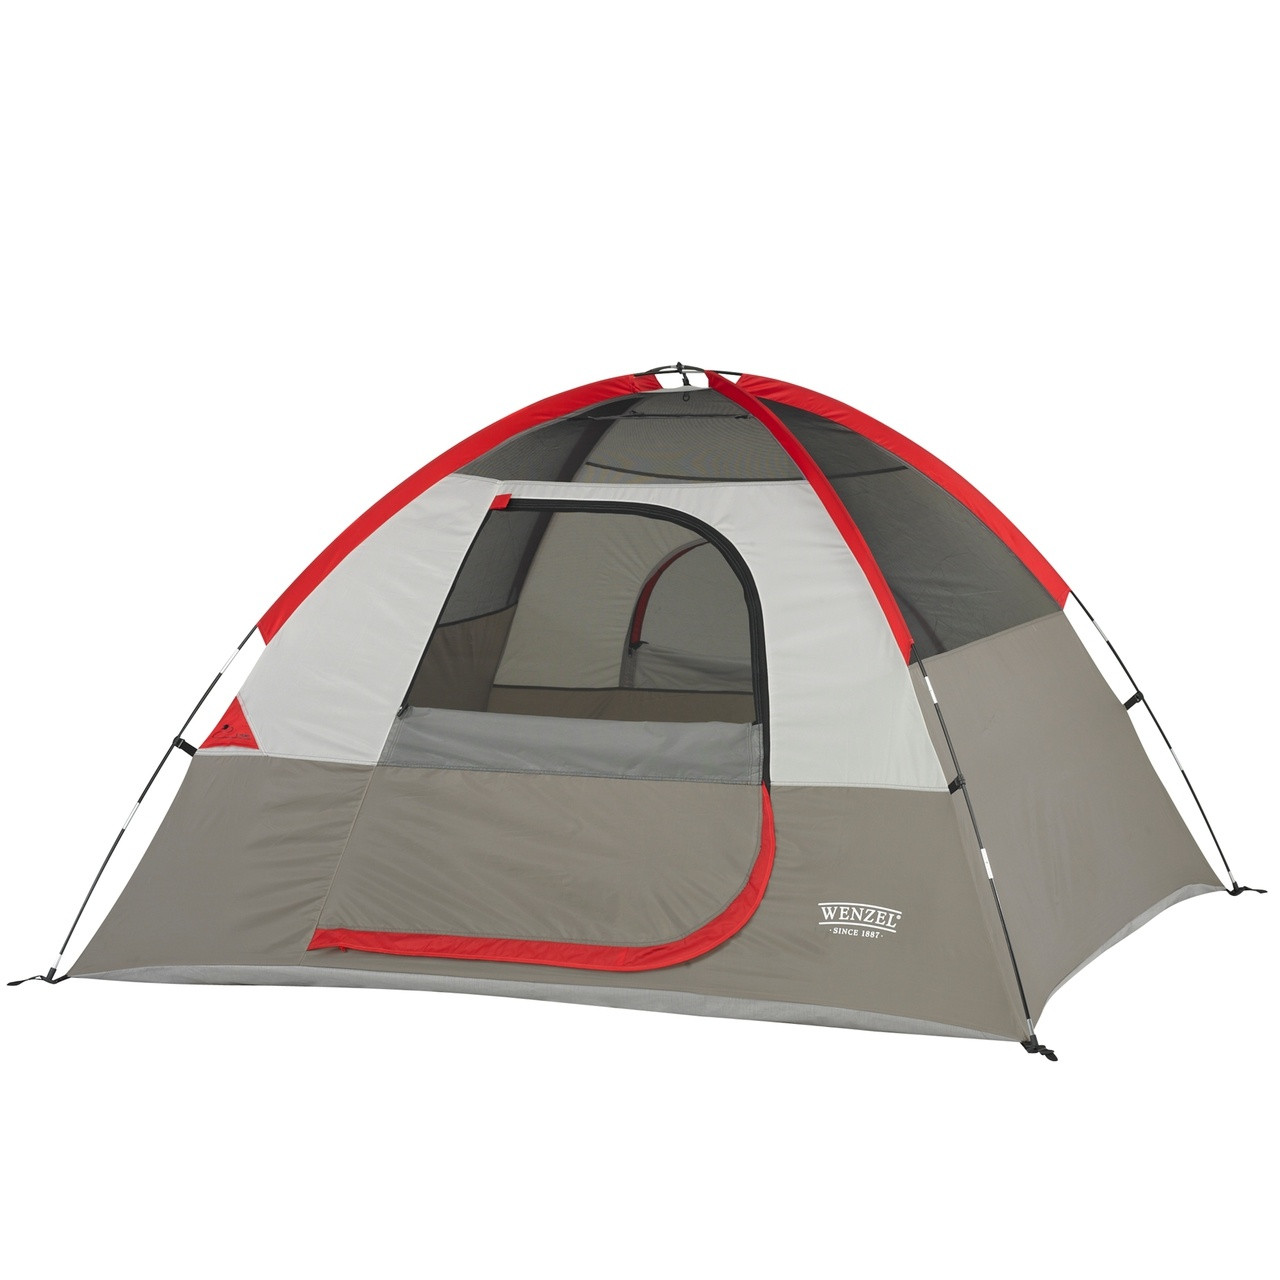 Wenzel Ridgeline 3 tent, gray and red with tan, setup with the rain fly off and the main screen door rolled open